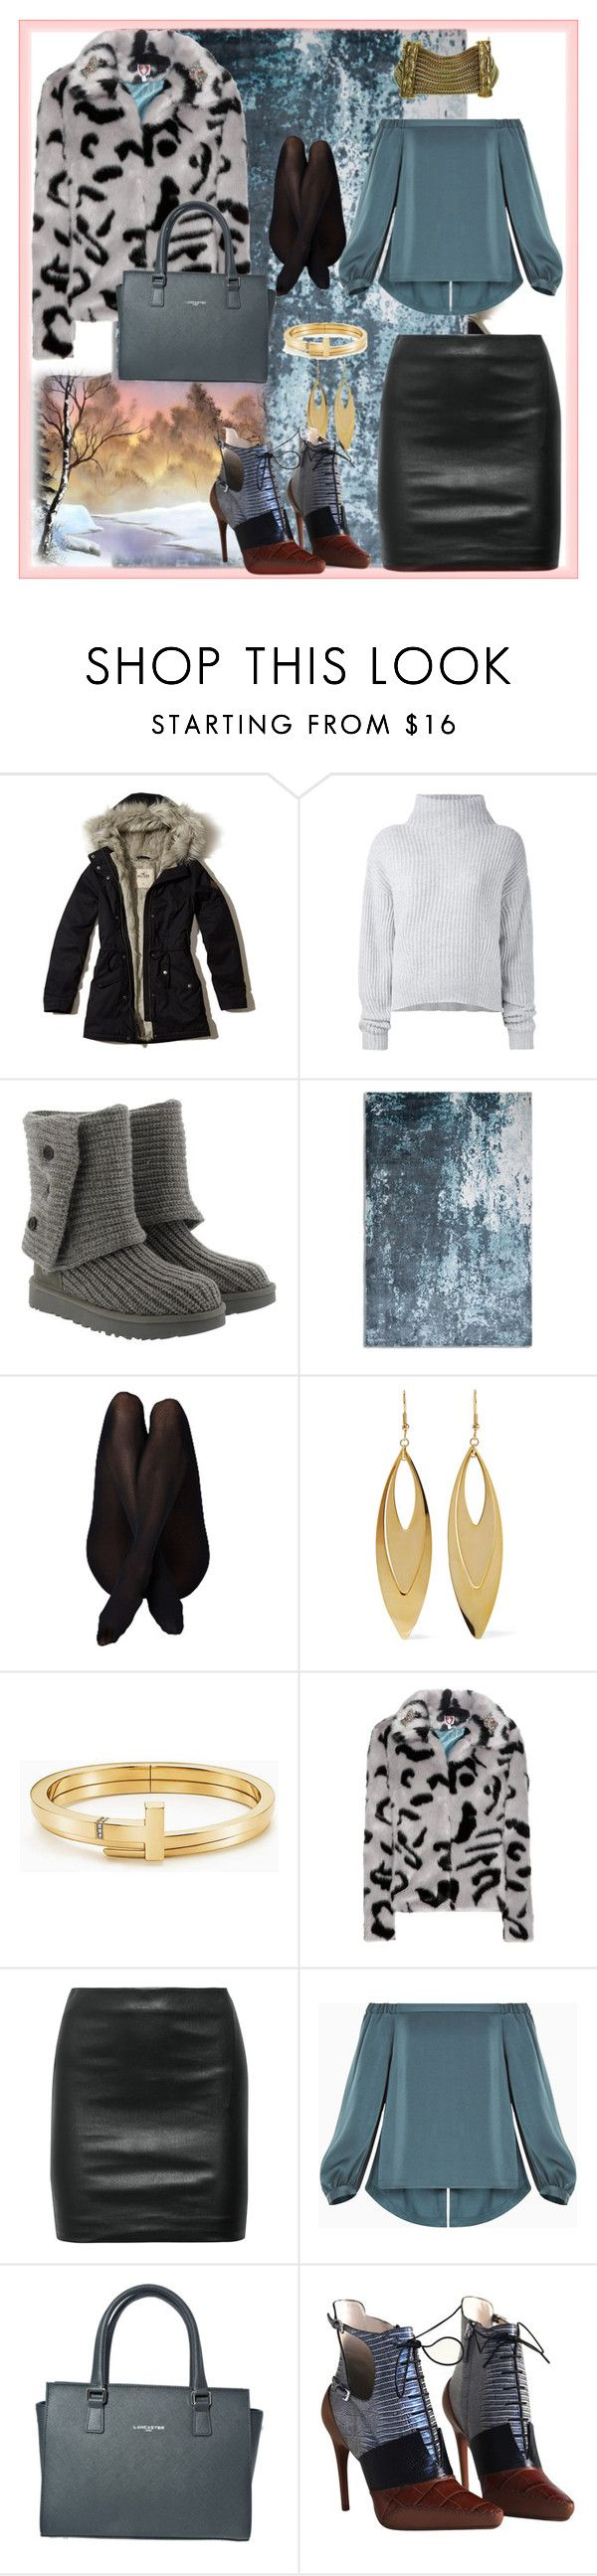 """""""# Winter trends"""" by smakena ❤ liked on Polyvore featuring Hollister Co., Le Kasha, UGG, Plantation Rug Co., Kenneth Jay Lane, Tiffany & Co., Shrimps, The Row, BCBGMAXAZRIA and Lancaster"""